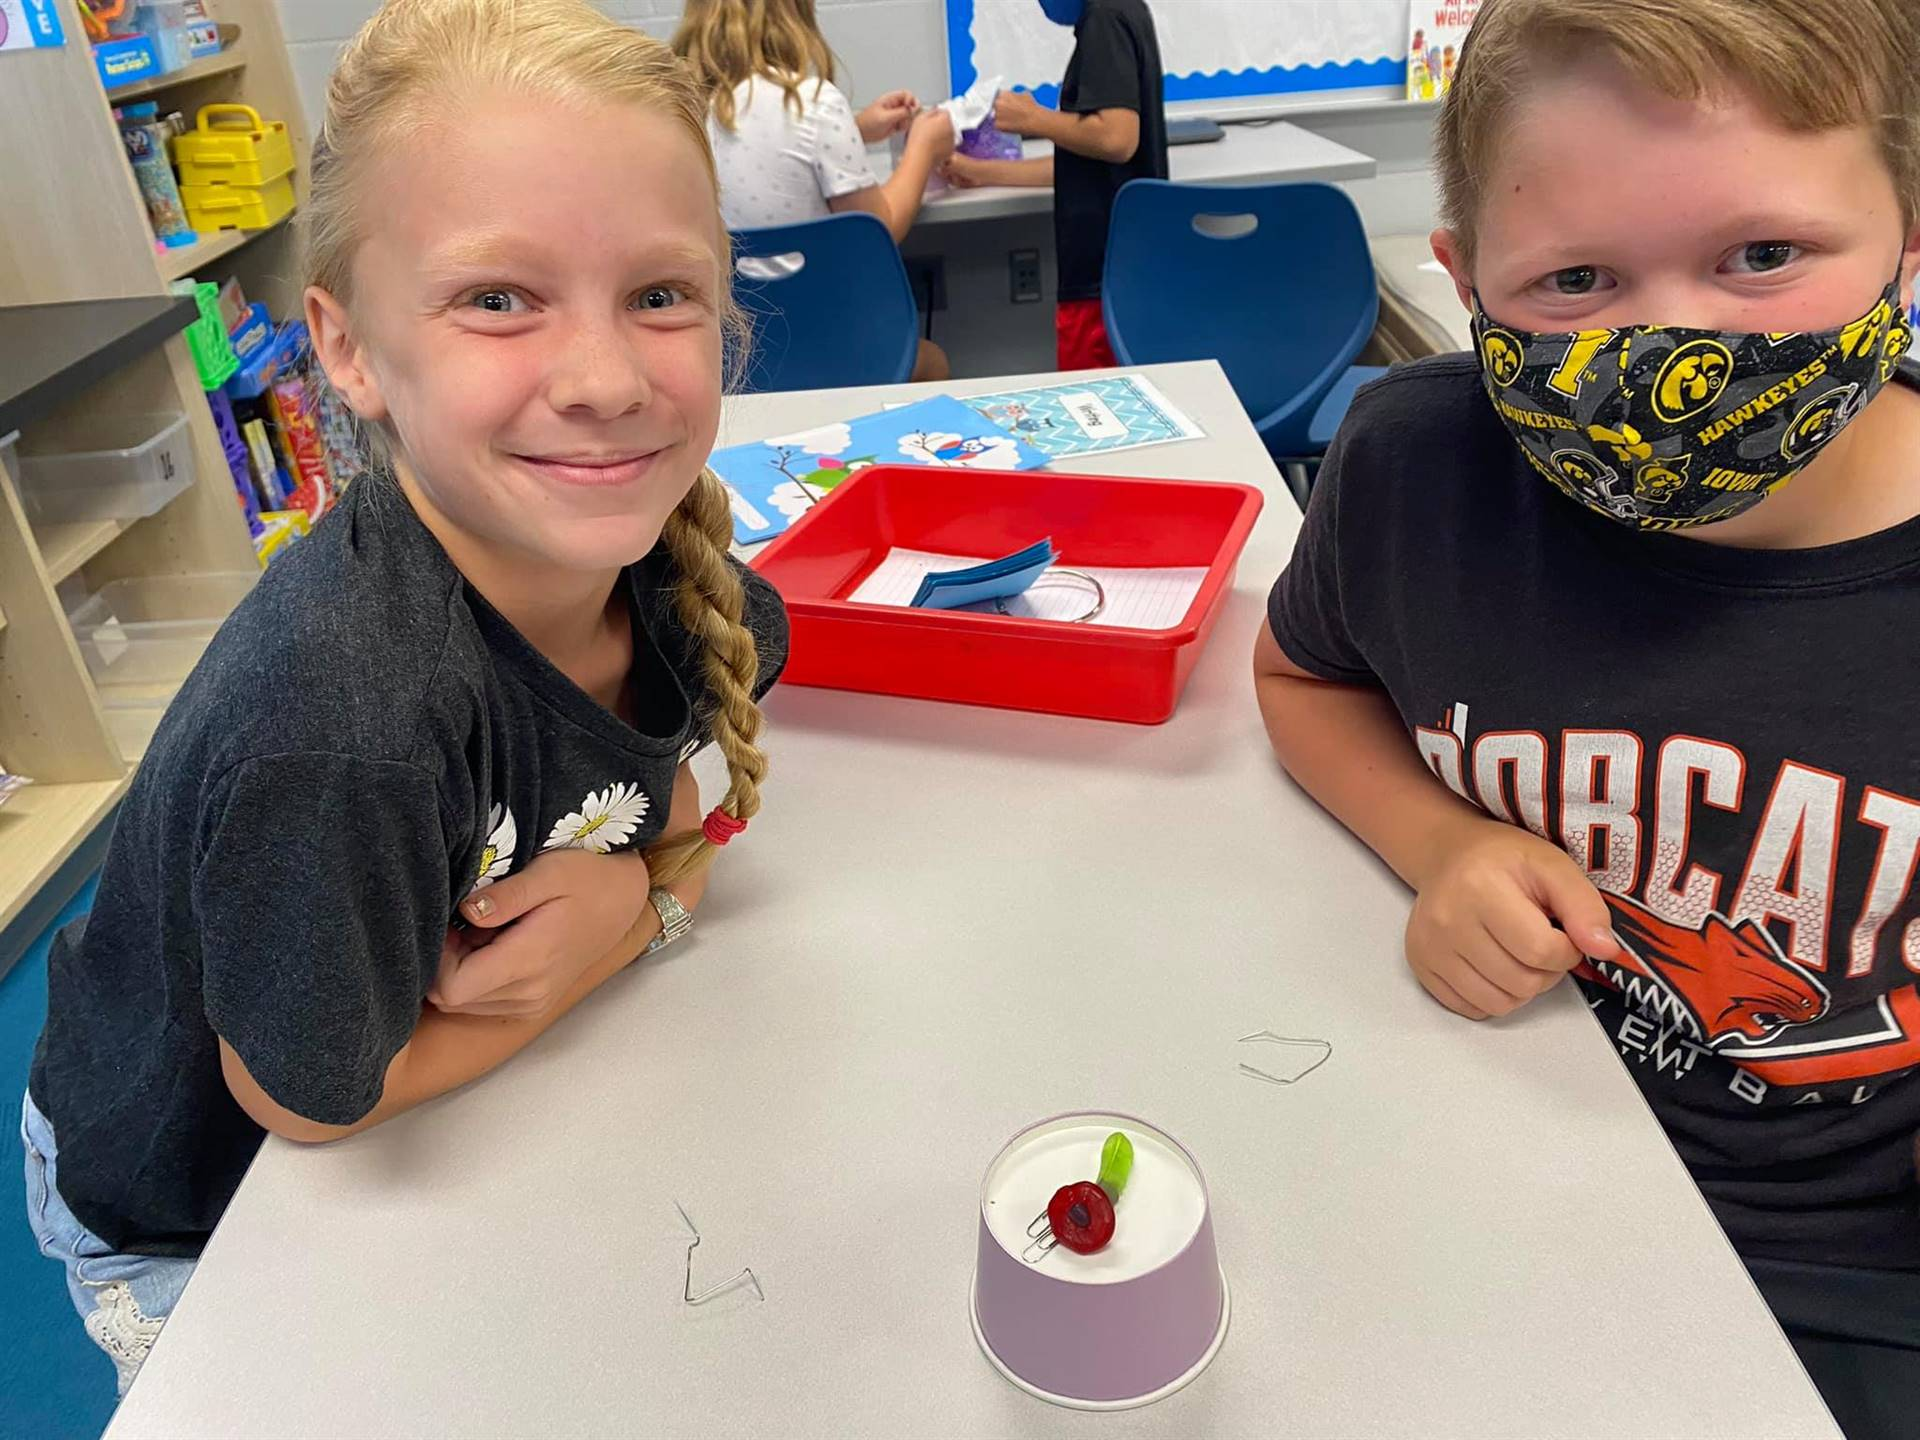 Two 3rd grade students with gummy worm